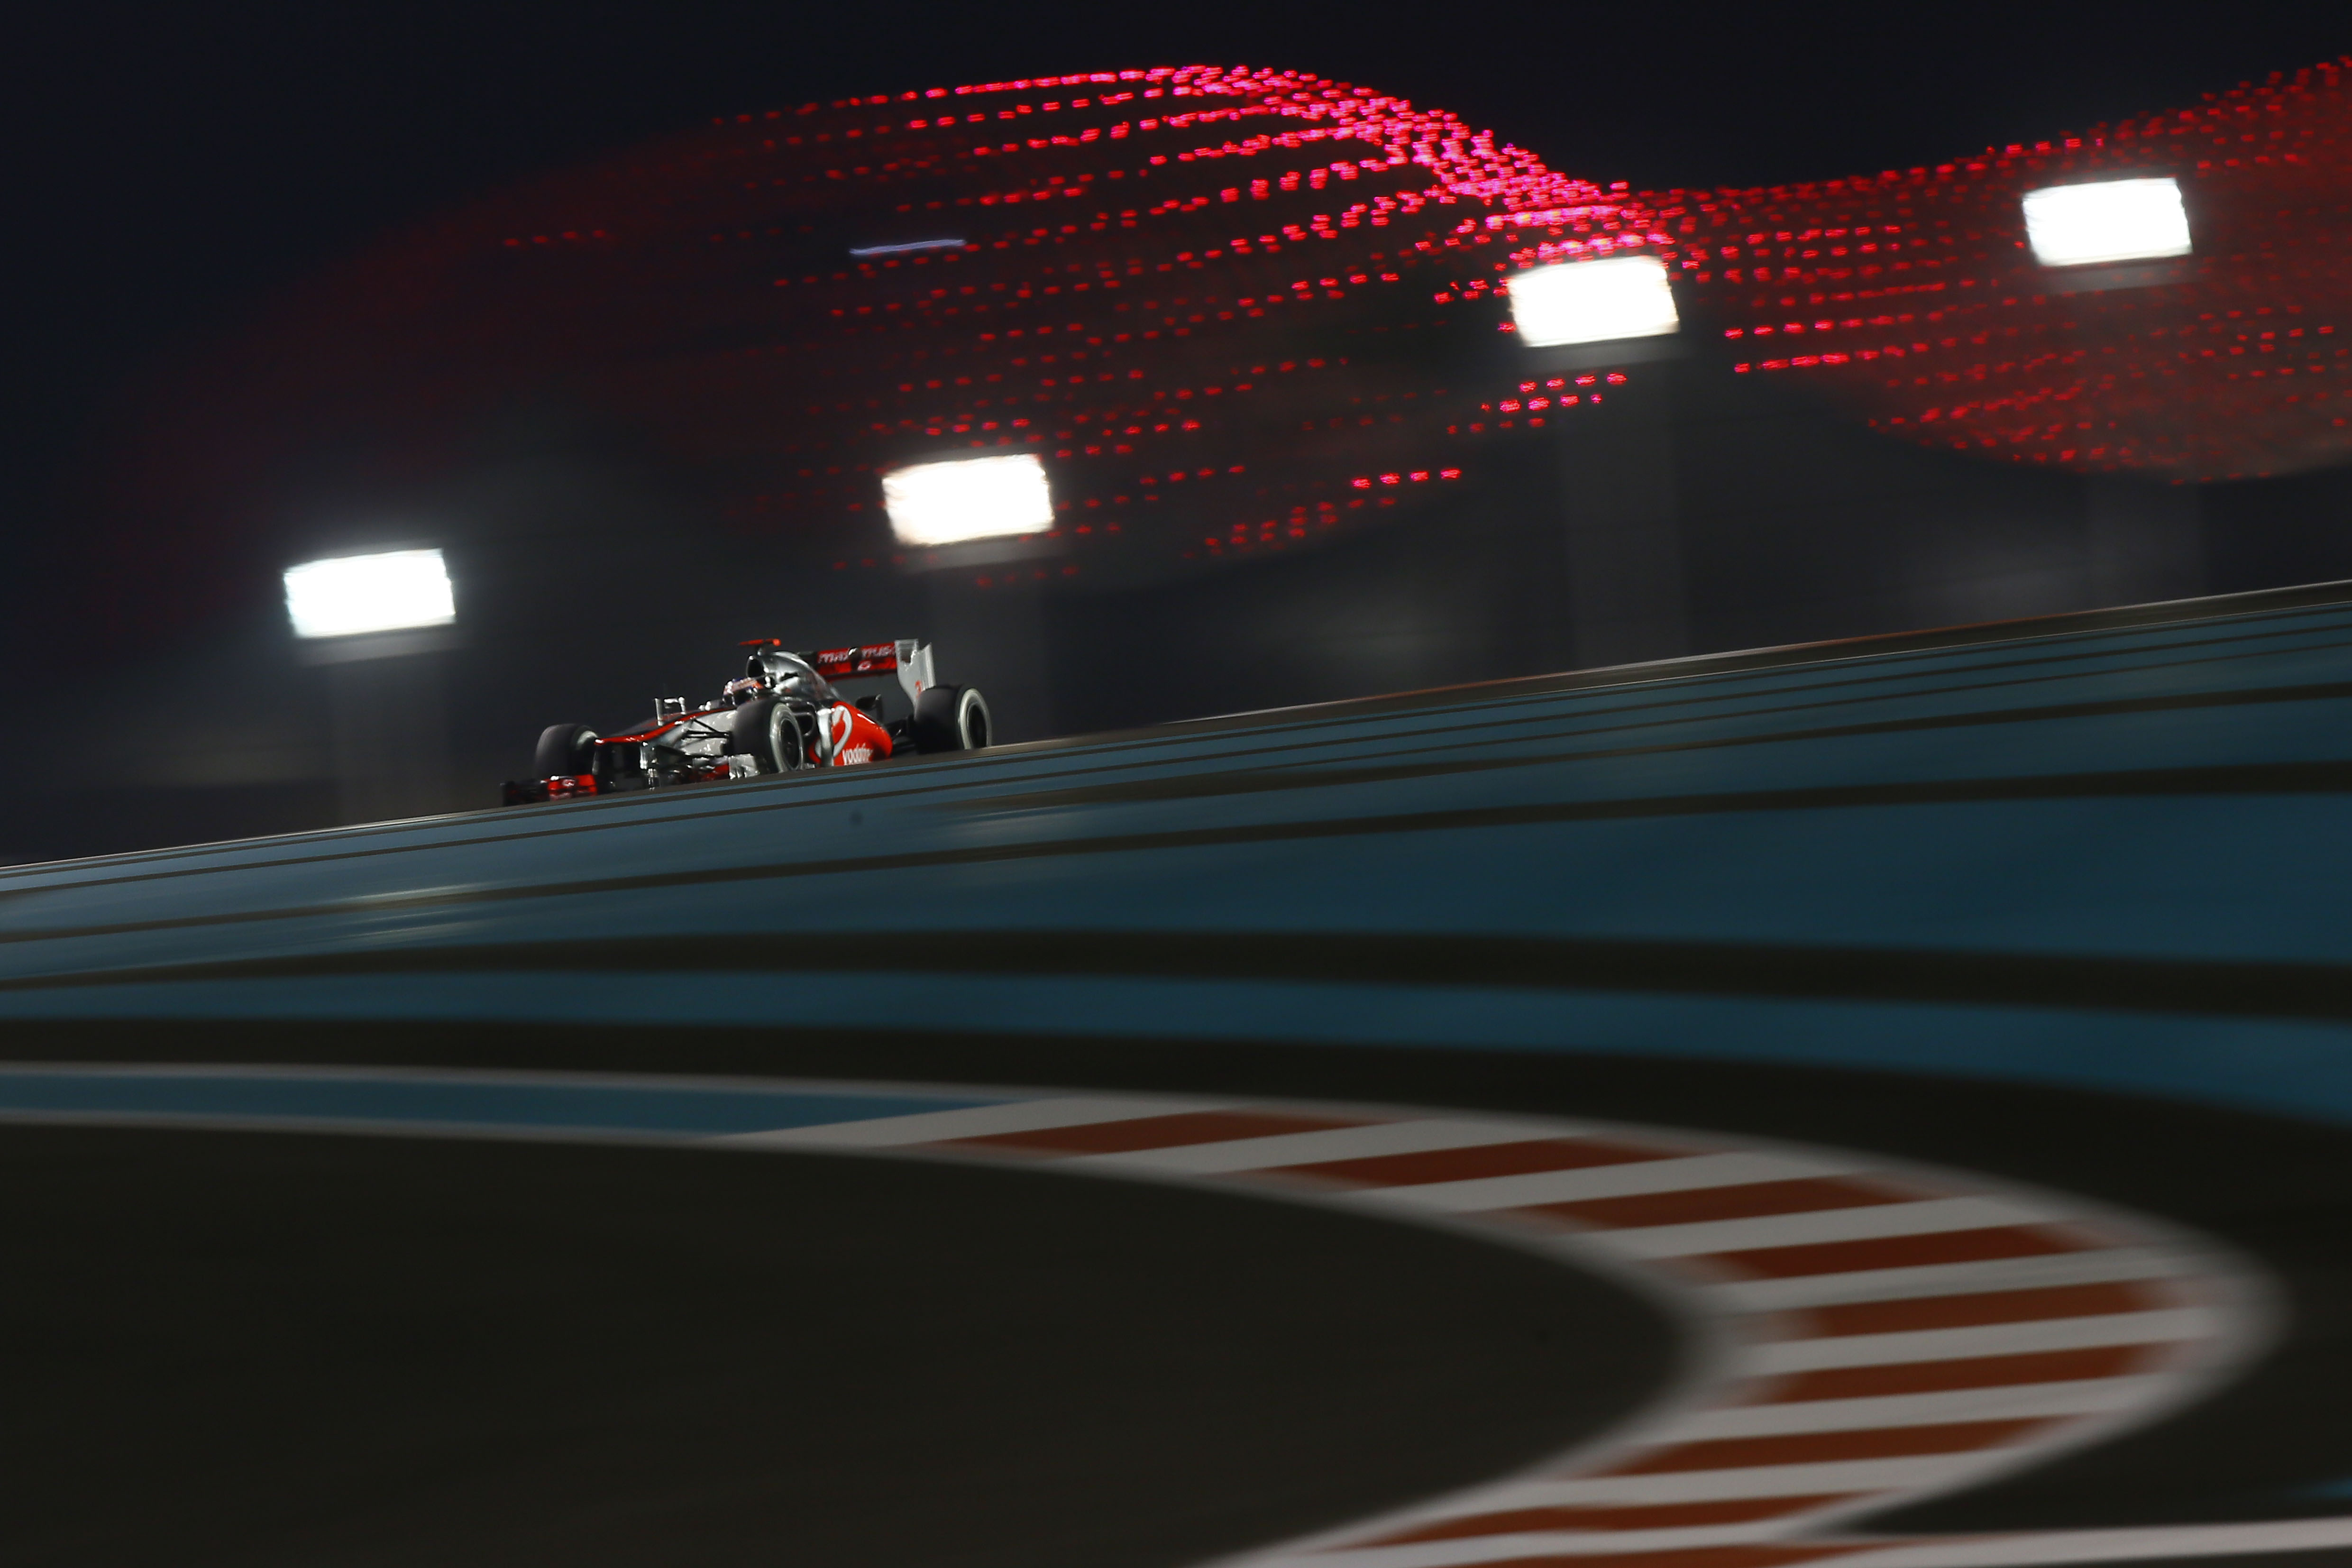 5 Things You Might Not Know About The Abu Dhabi Grand Prix